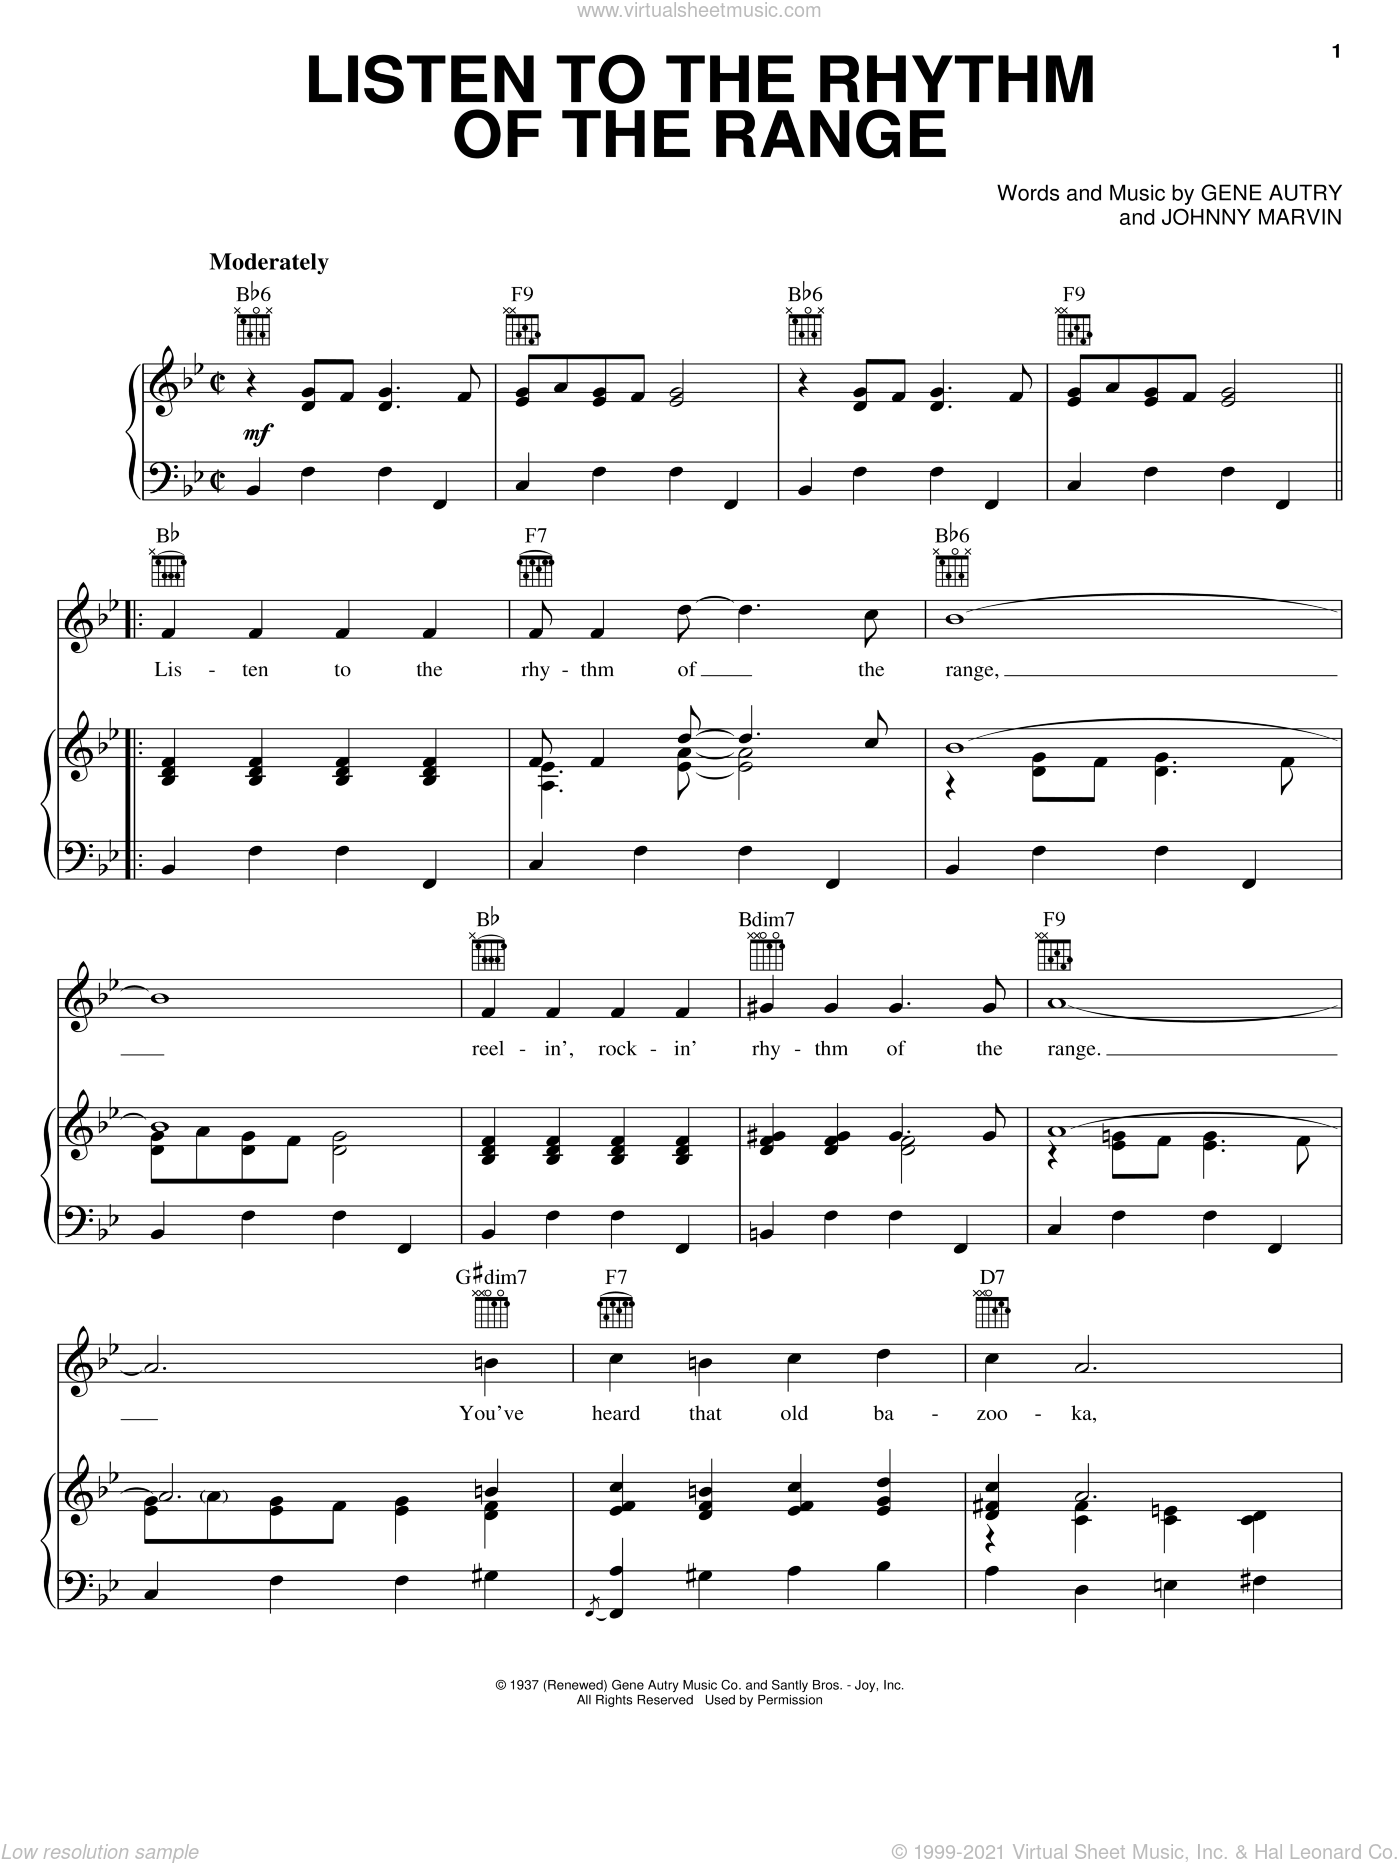 Listen To The Rhythm Of The Range sheet music for voice, piano or guitar by Johnny Marvin and Gene Autry. Score Image Preview.